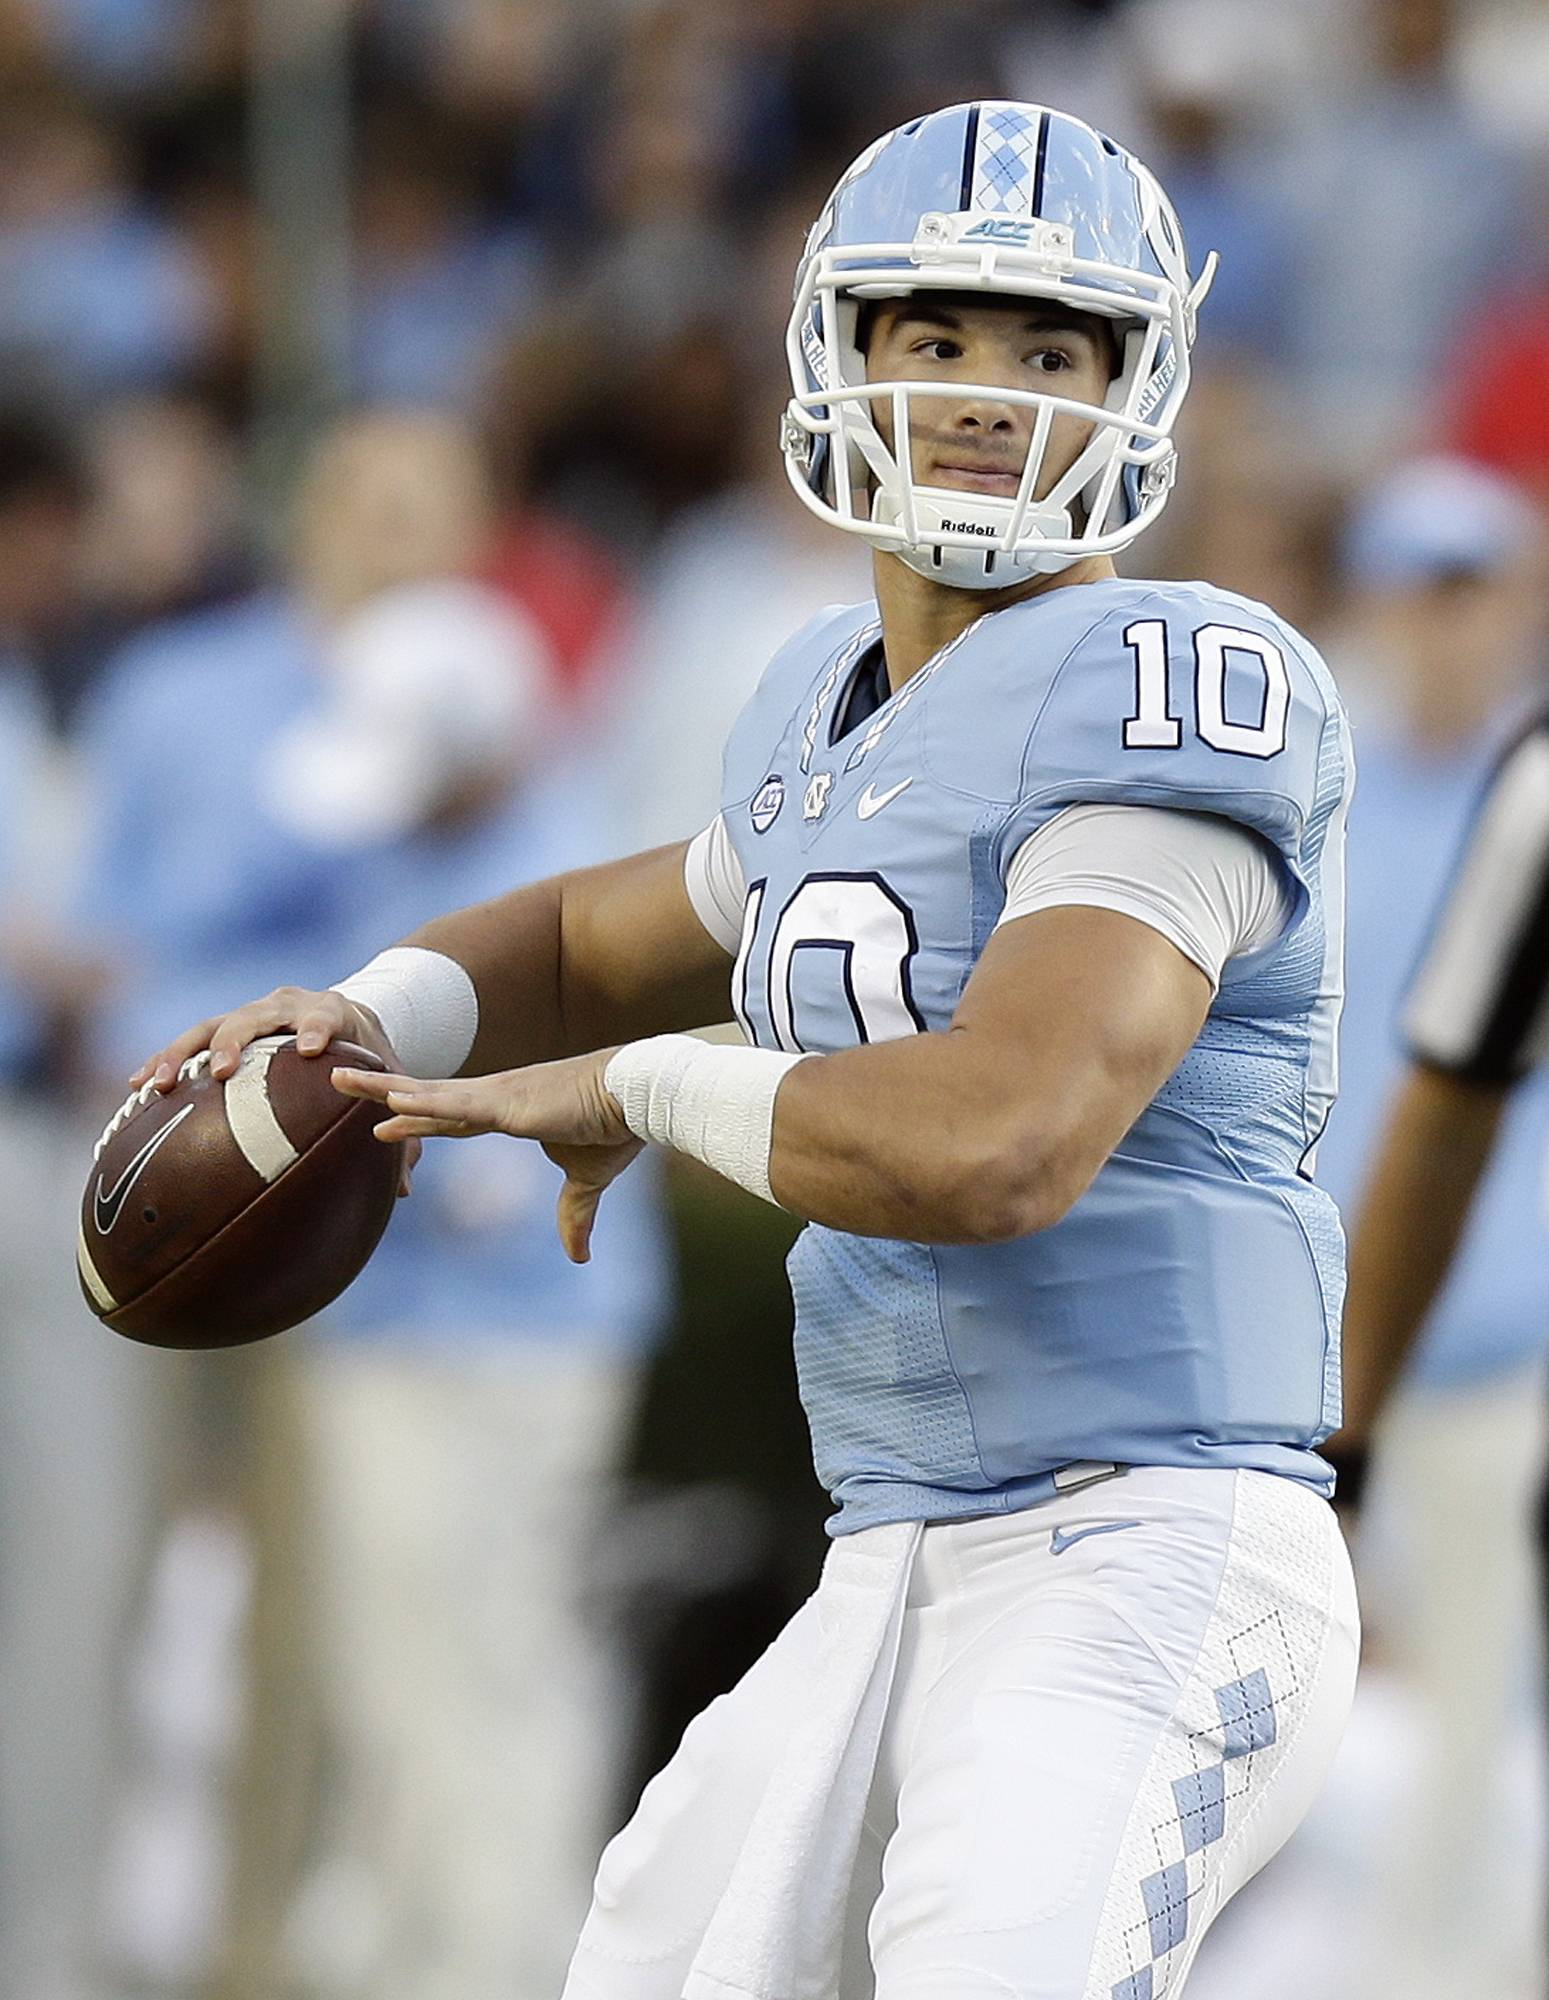 FILE — In this Nov. 19, 2016, file photo, North Carolina quarterback Mitch Trubisky (10) looks to pass against The Citadel during the first half of an NCAA college football game in Chapel Hill, N.C. The NFL Draft will be held April 27-29, 2017, in Philadelphia. (AP Photo/Gerry Broome, File)